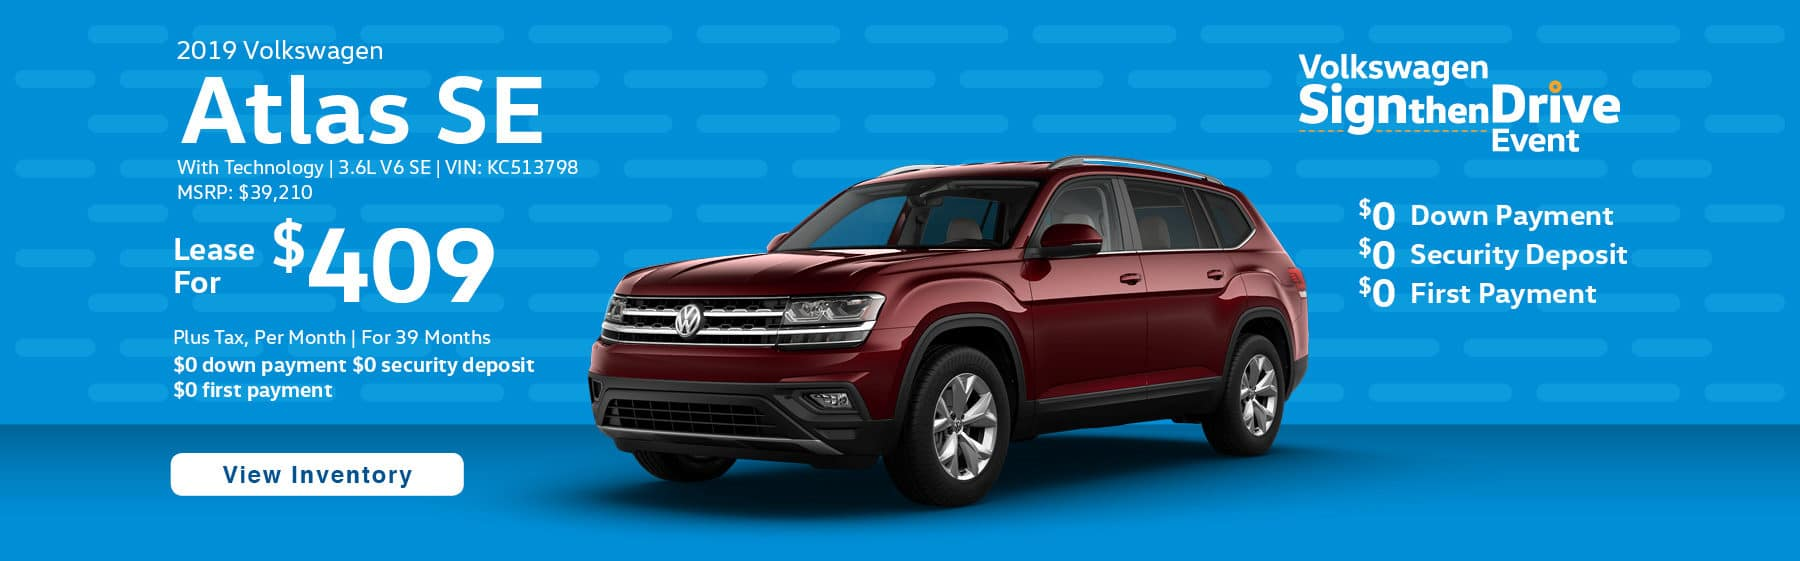 Lease the 2019 Volkswagen Atlas SE V6 for only $409 per month, plus tax for 39 months. $0 down payment required.